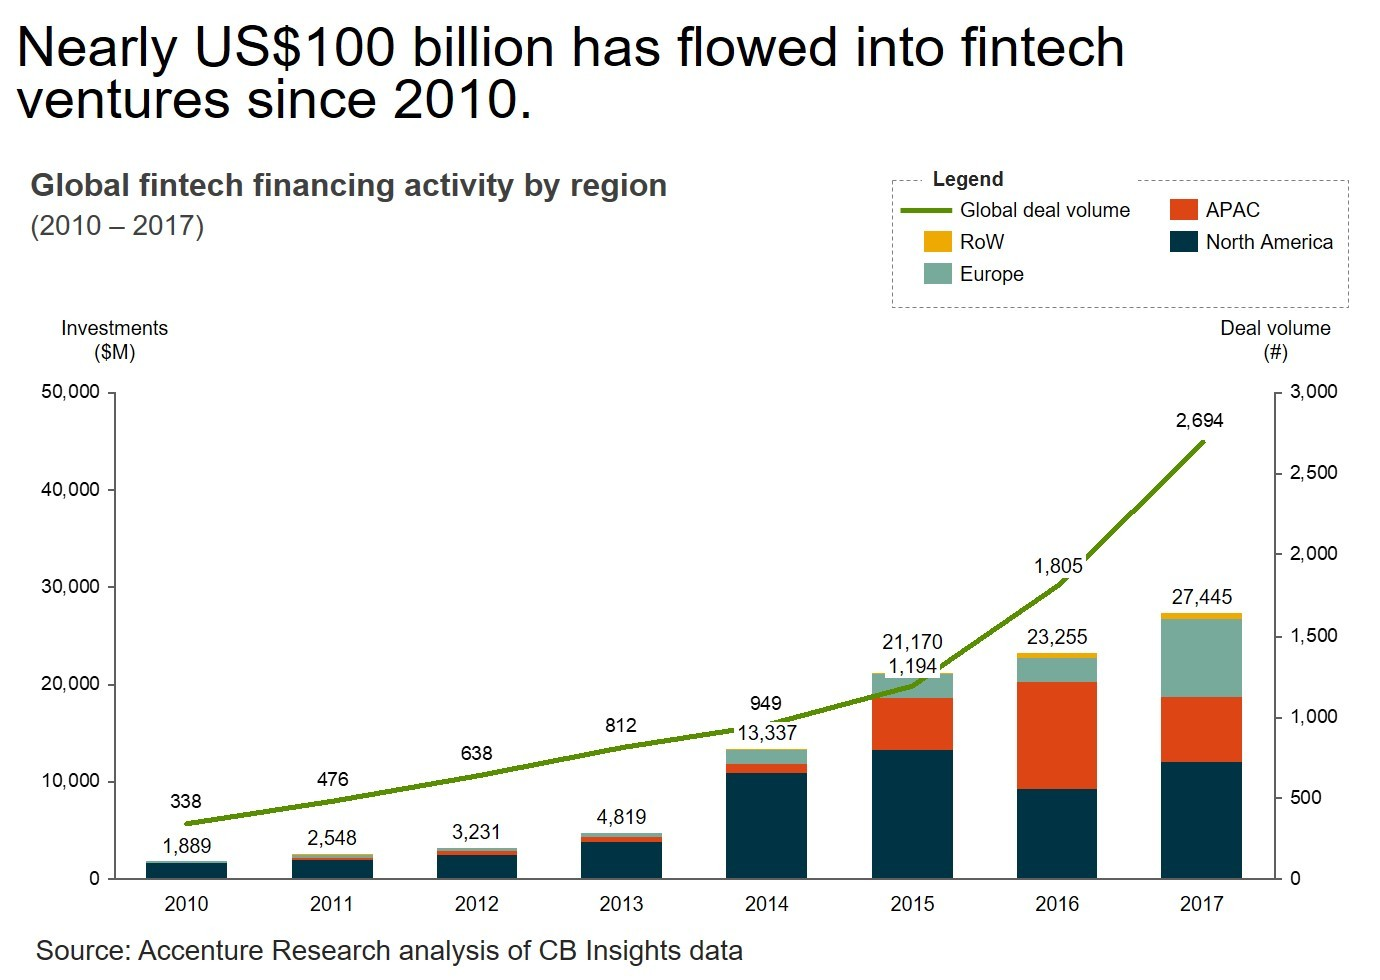 Fintech: a Force for Disrupting and Democratising Financial Services